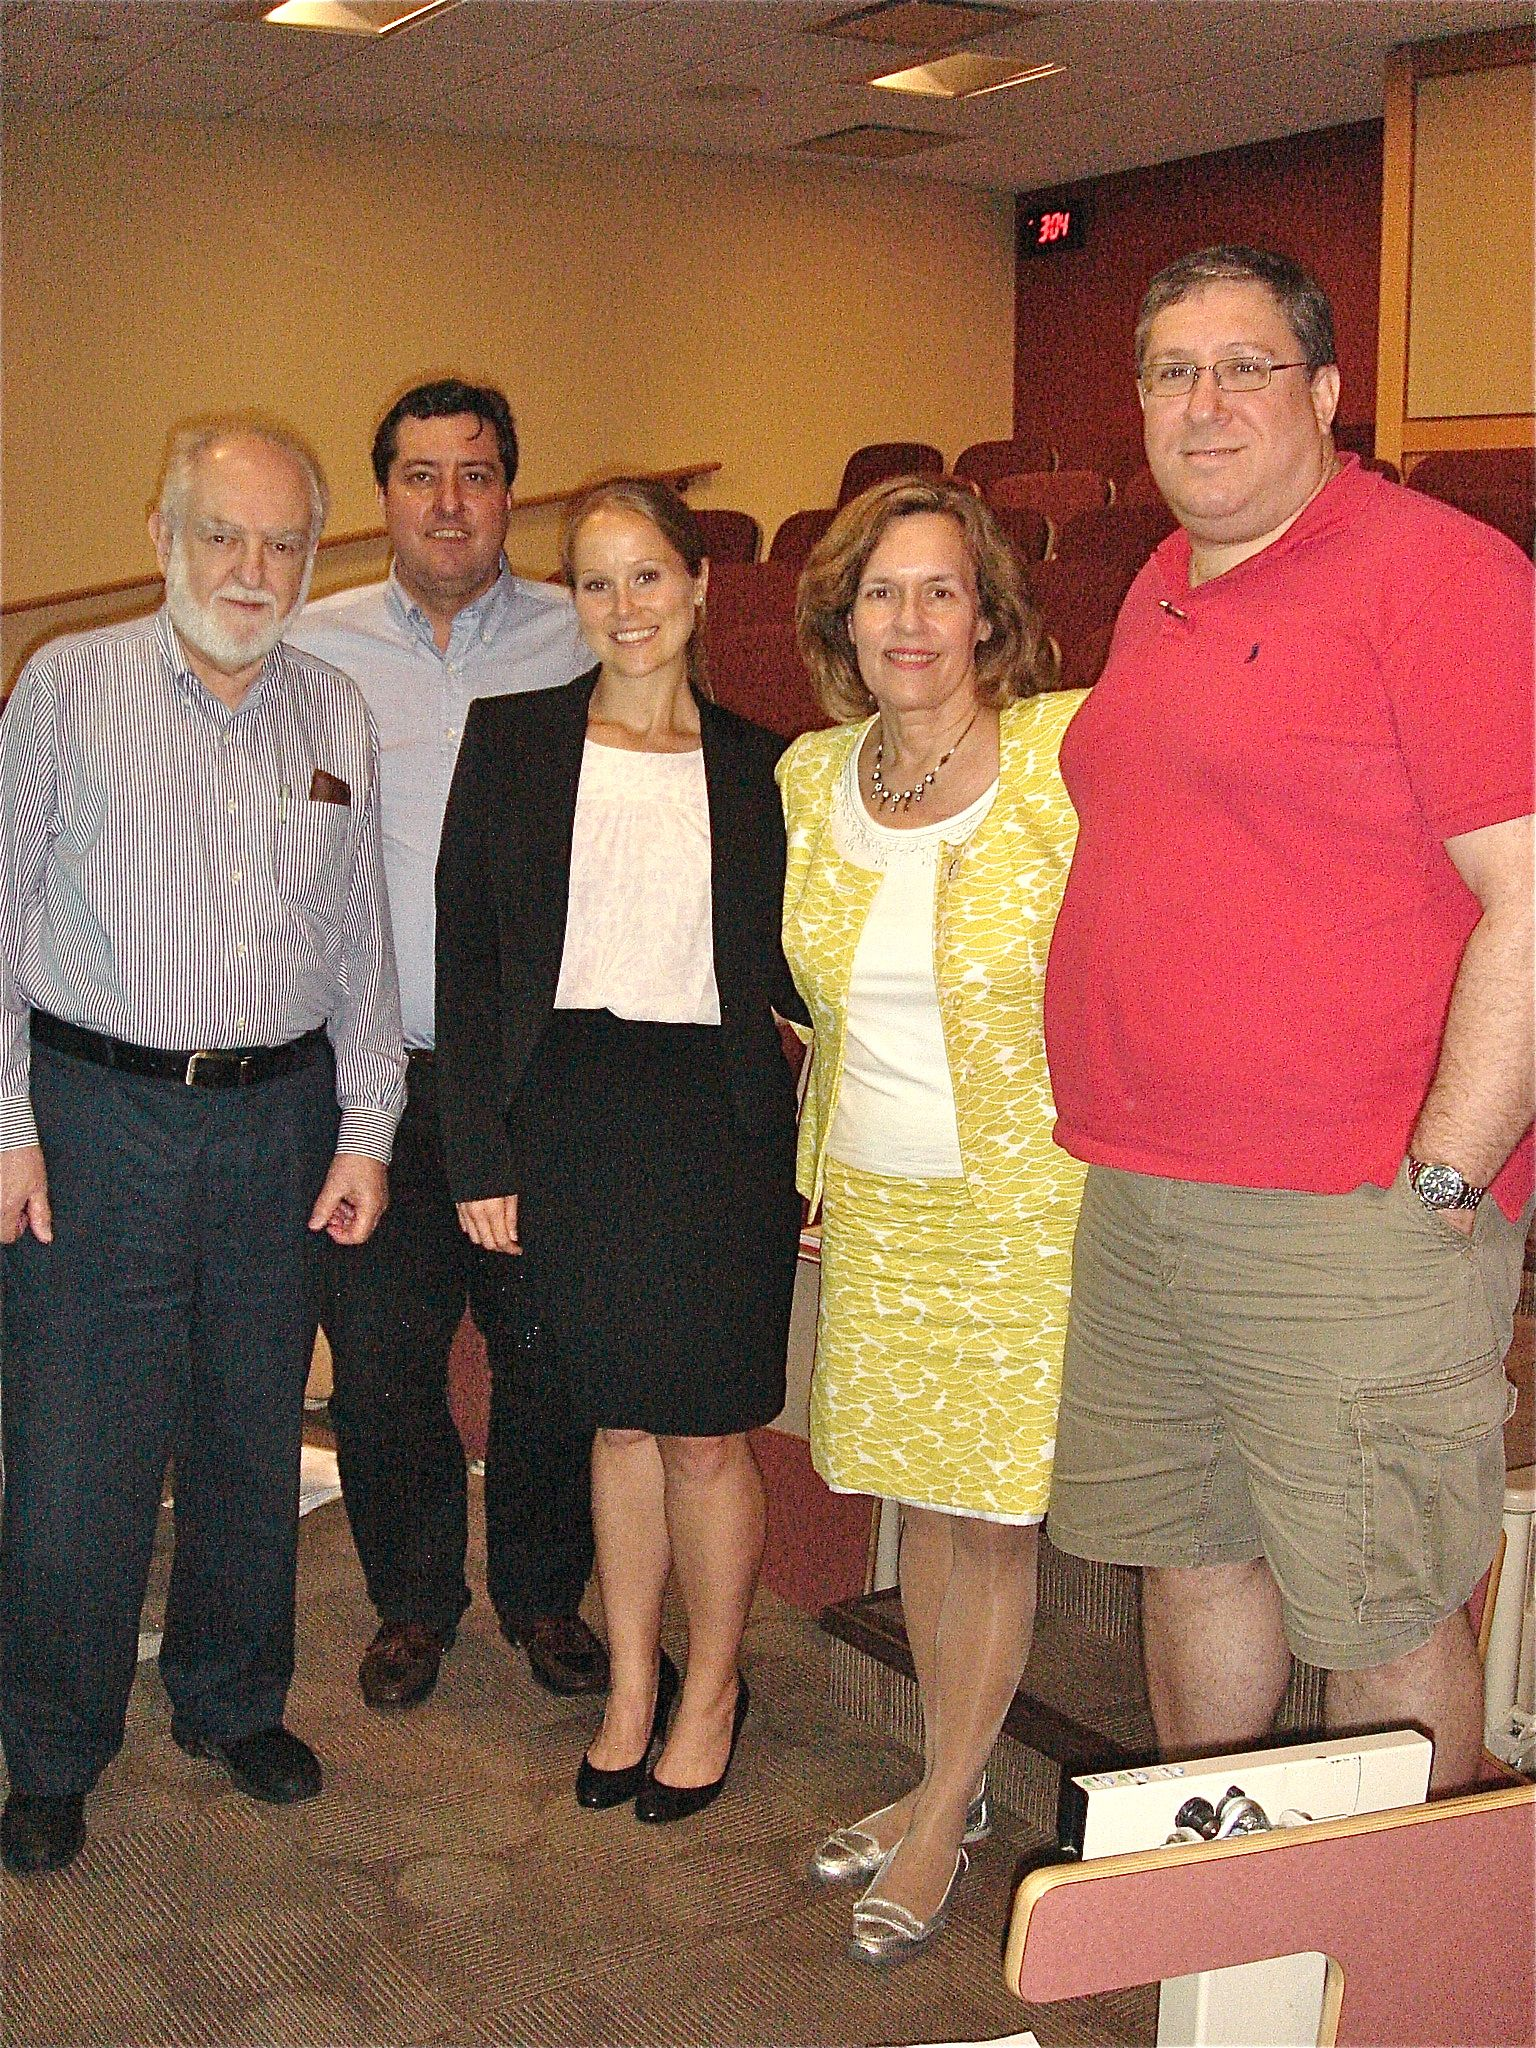 Dr. Gudas and group at Megan Ricard's defense.